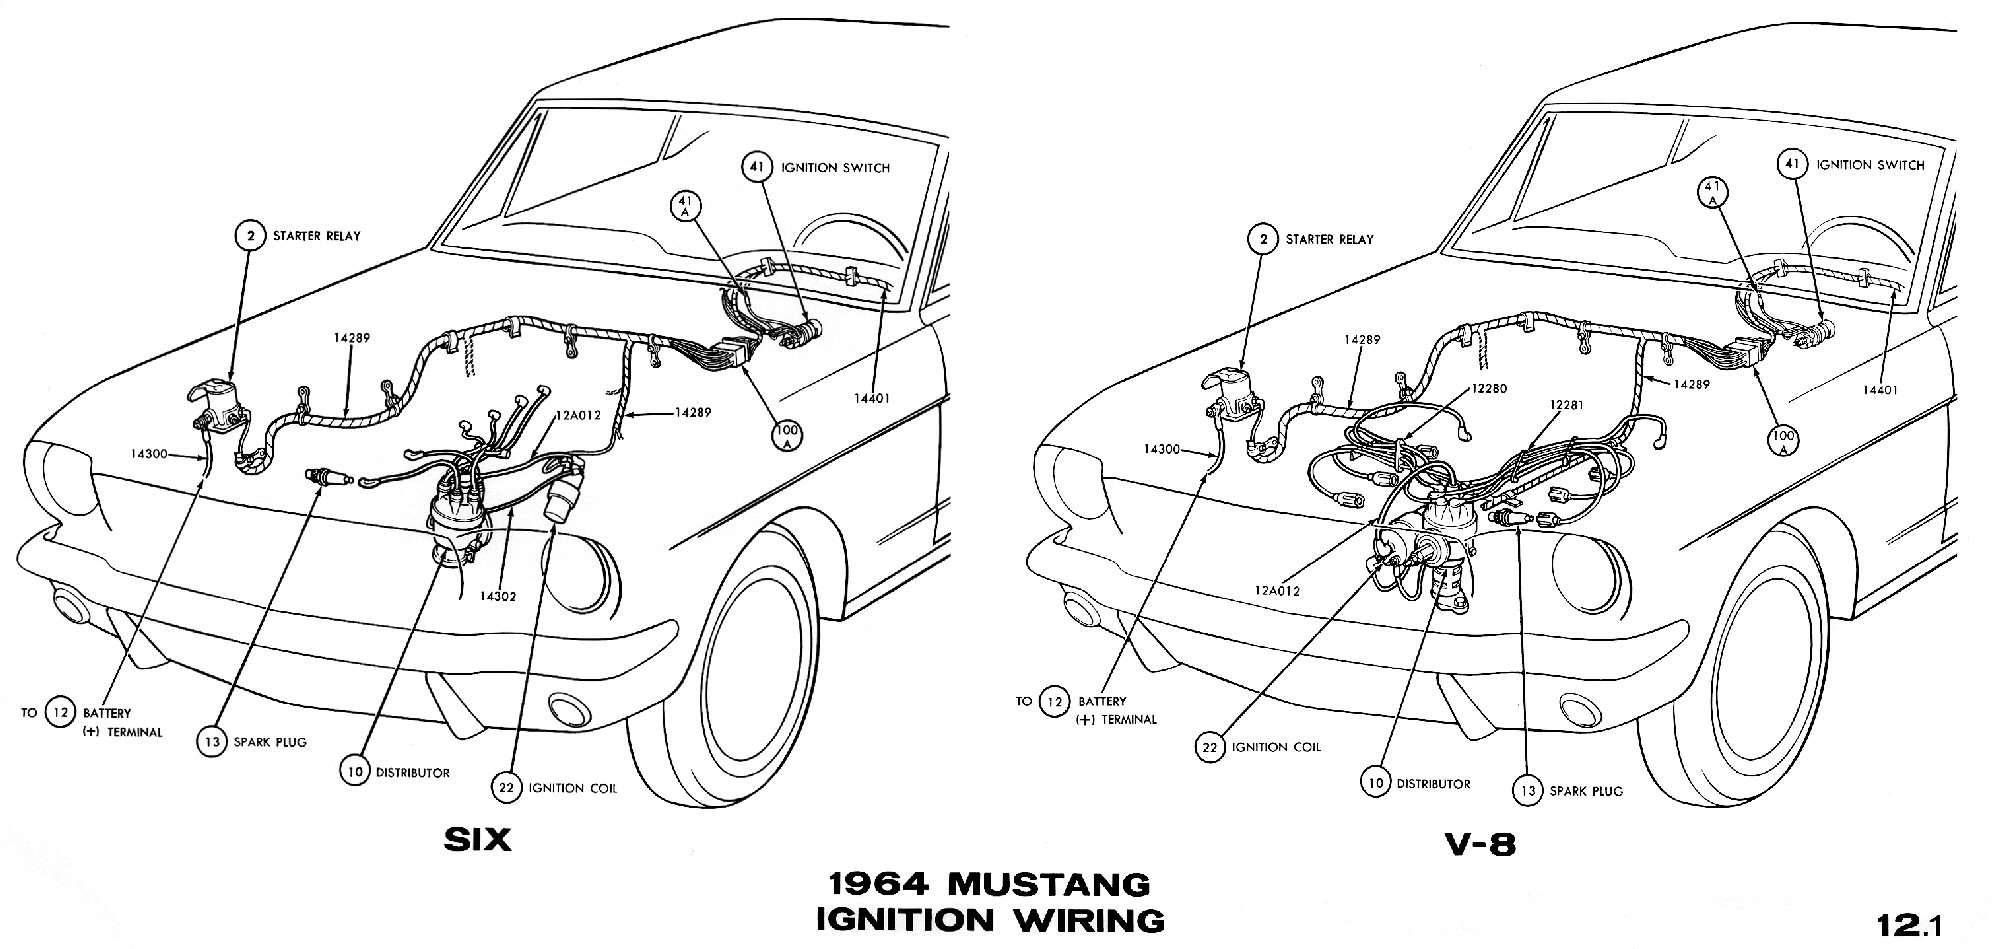 1964 Mustang Wiring Diagrams Average Joe Restoration Ford Spark Plug Wire Diagram Sm1964c Ignition Pictorial